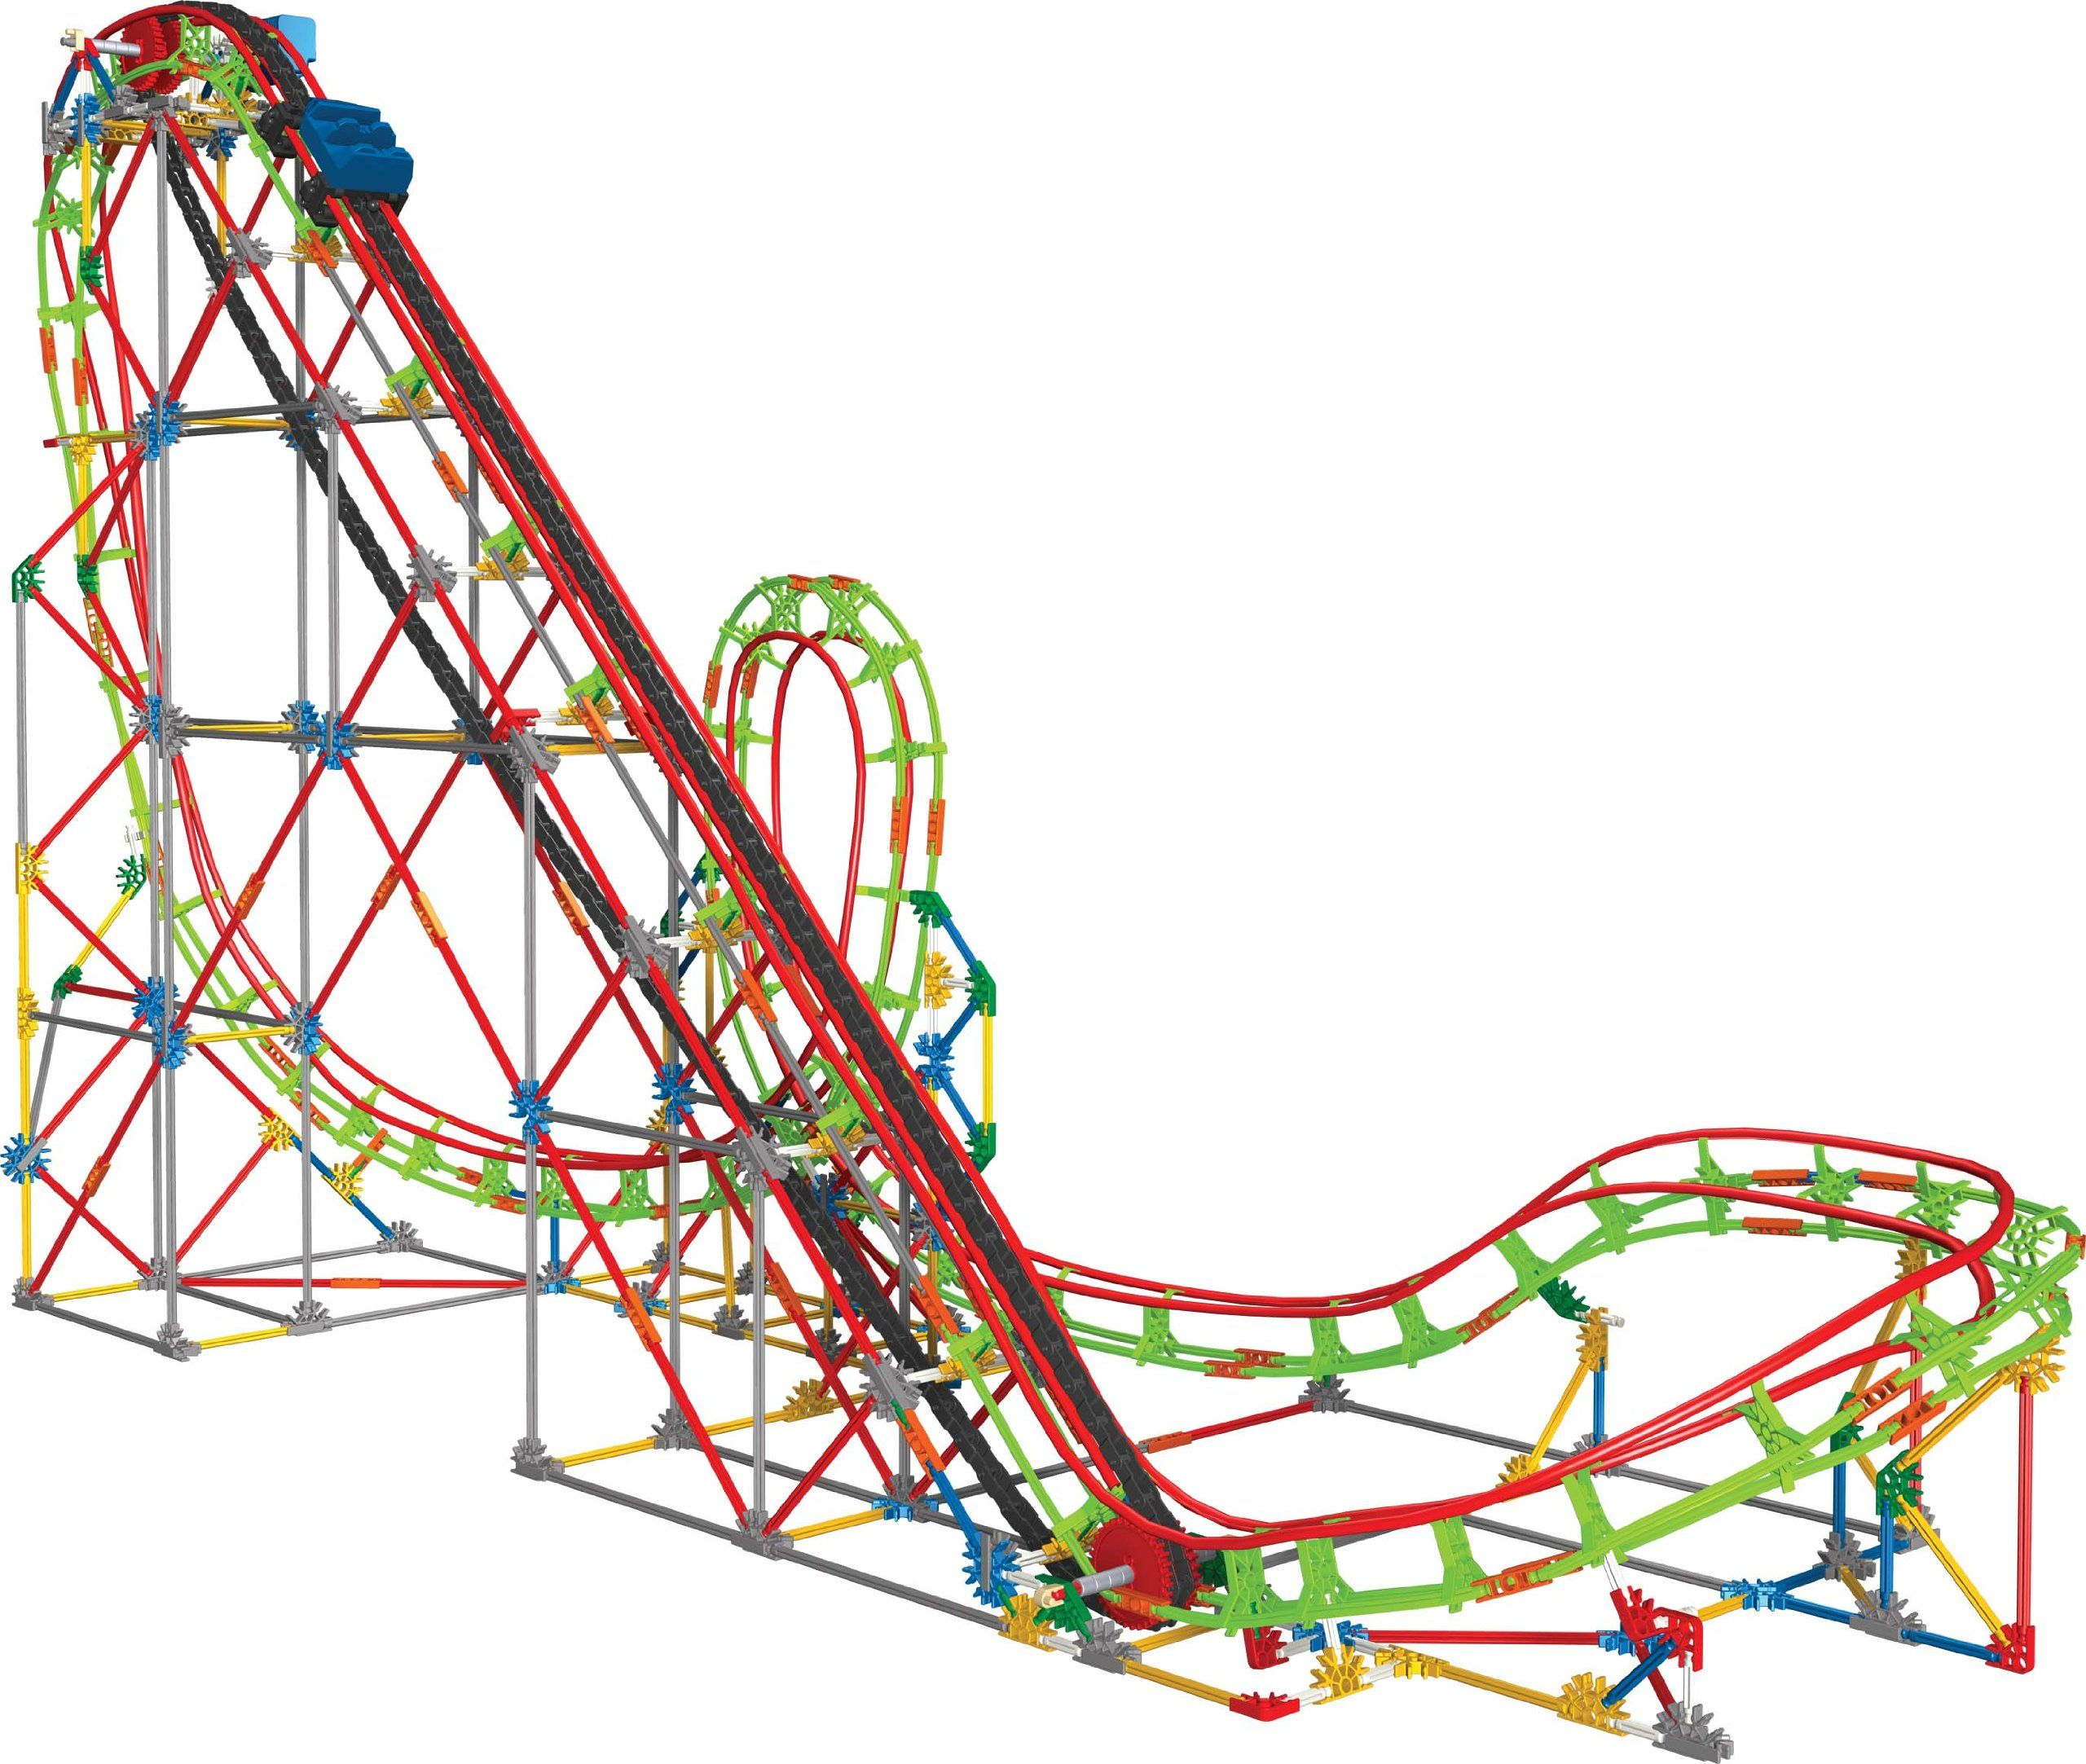 Knex Education Roller Coaster Physics Set Learn Even More